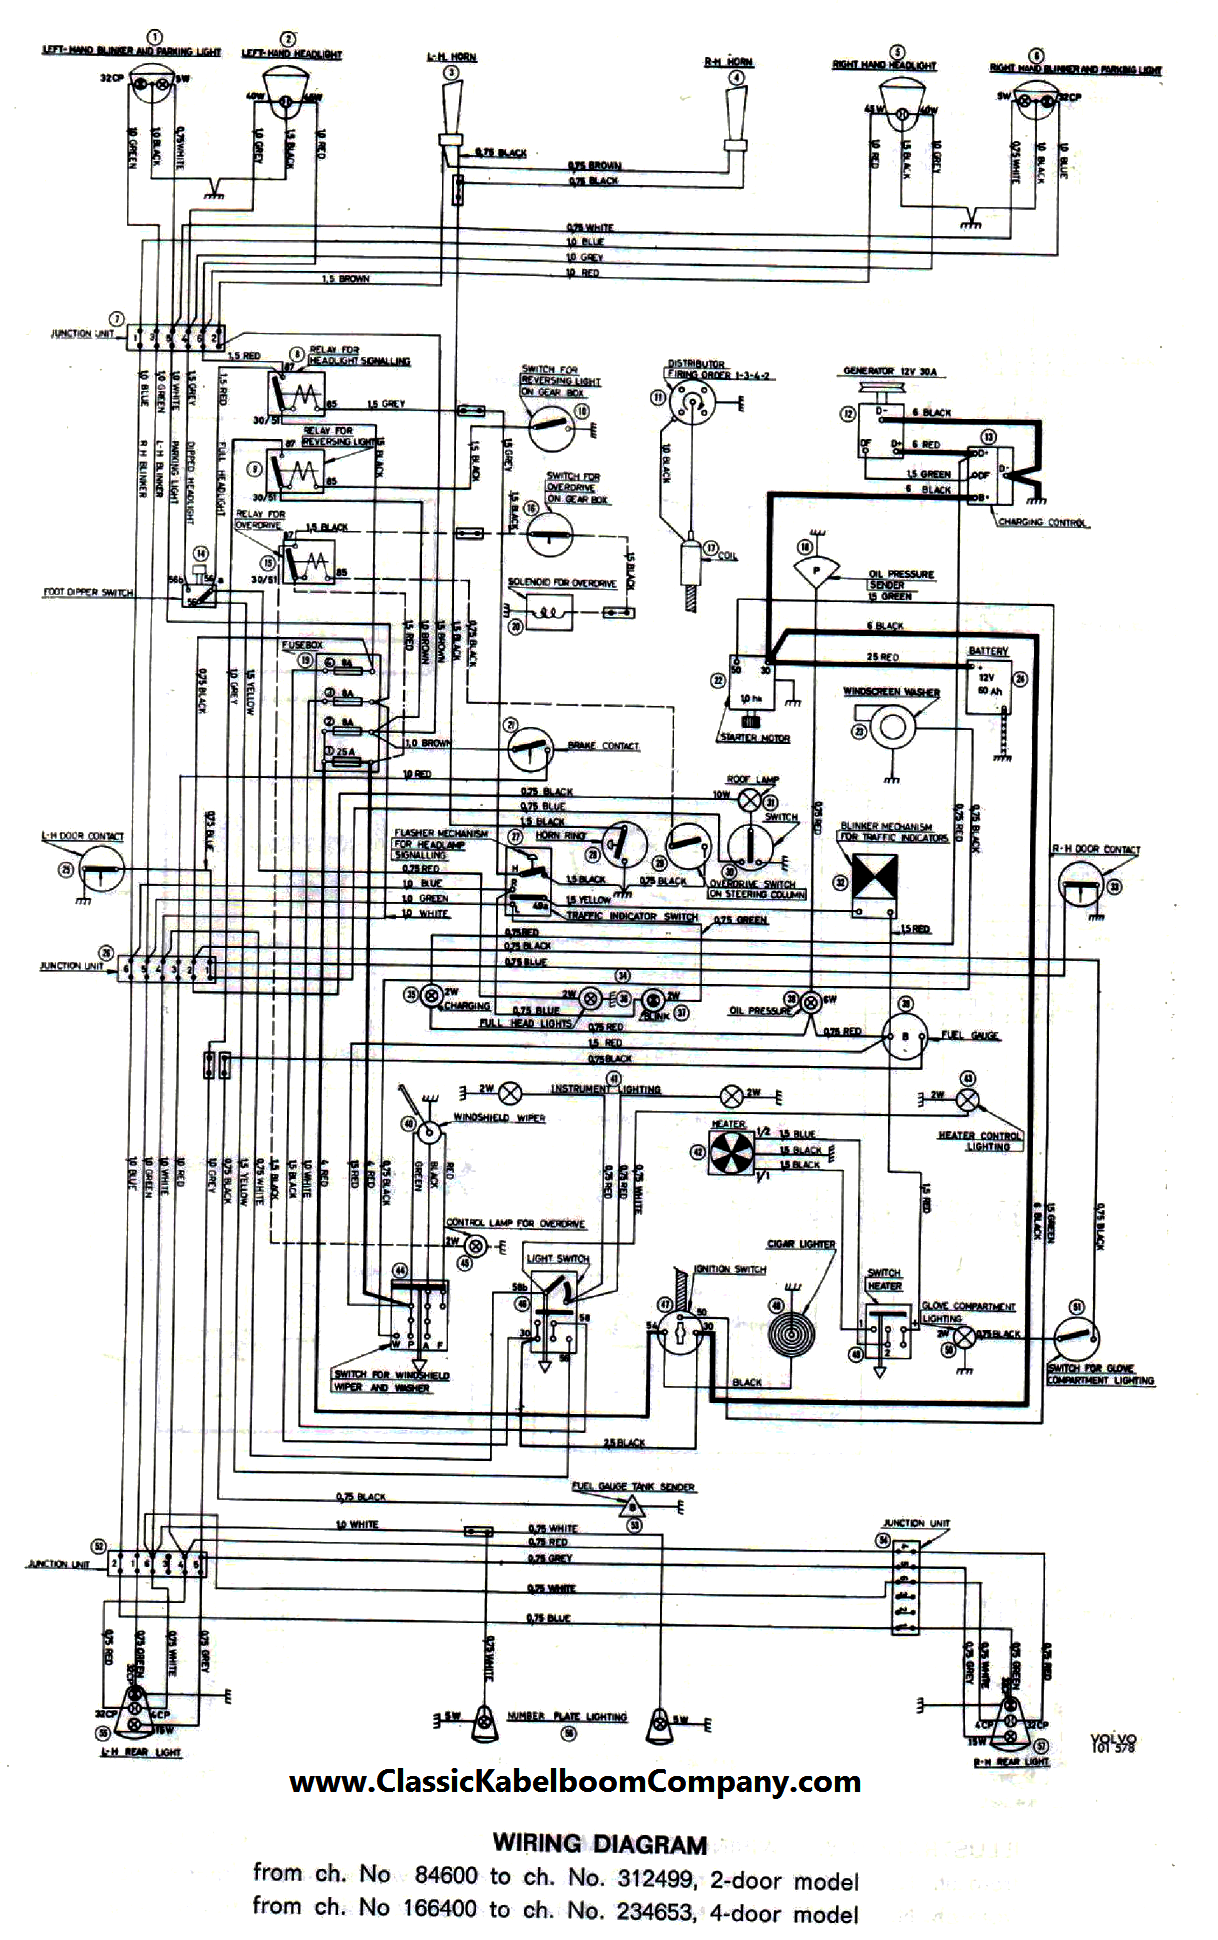 1438959 Fuel Pressure Sensor Location likewise RepairGuideContent additionally Diagrams besides Dodge 360 2 Bbl Engine Diagram in addition 2000 Bmw 323i Engine Diagram Html. on schematic diagram 99 cougar